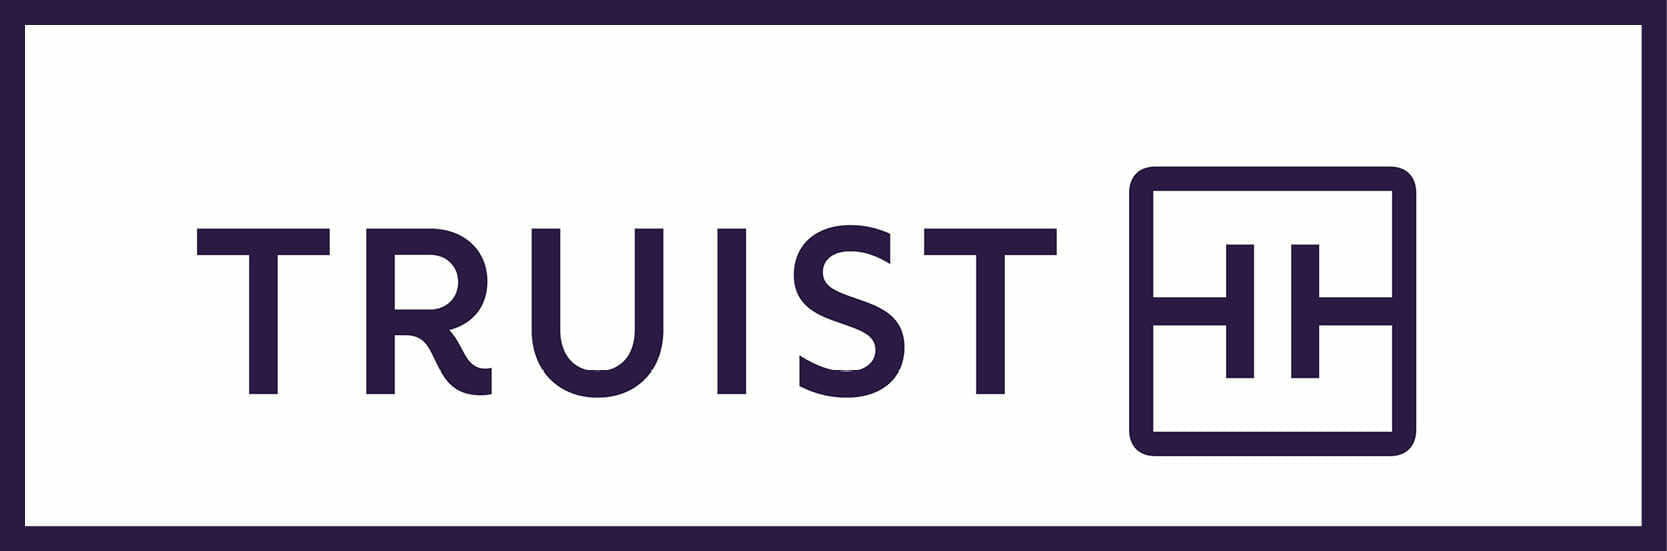 Truist Receives Perfect 100 rating on 2021 Corporate Equality Index